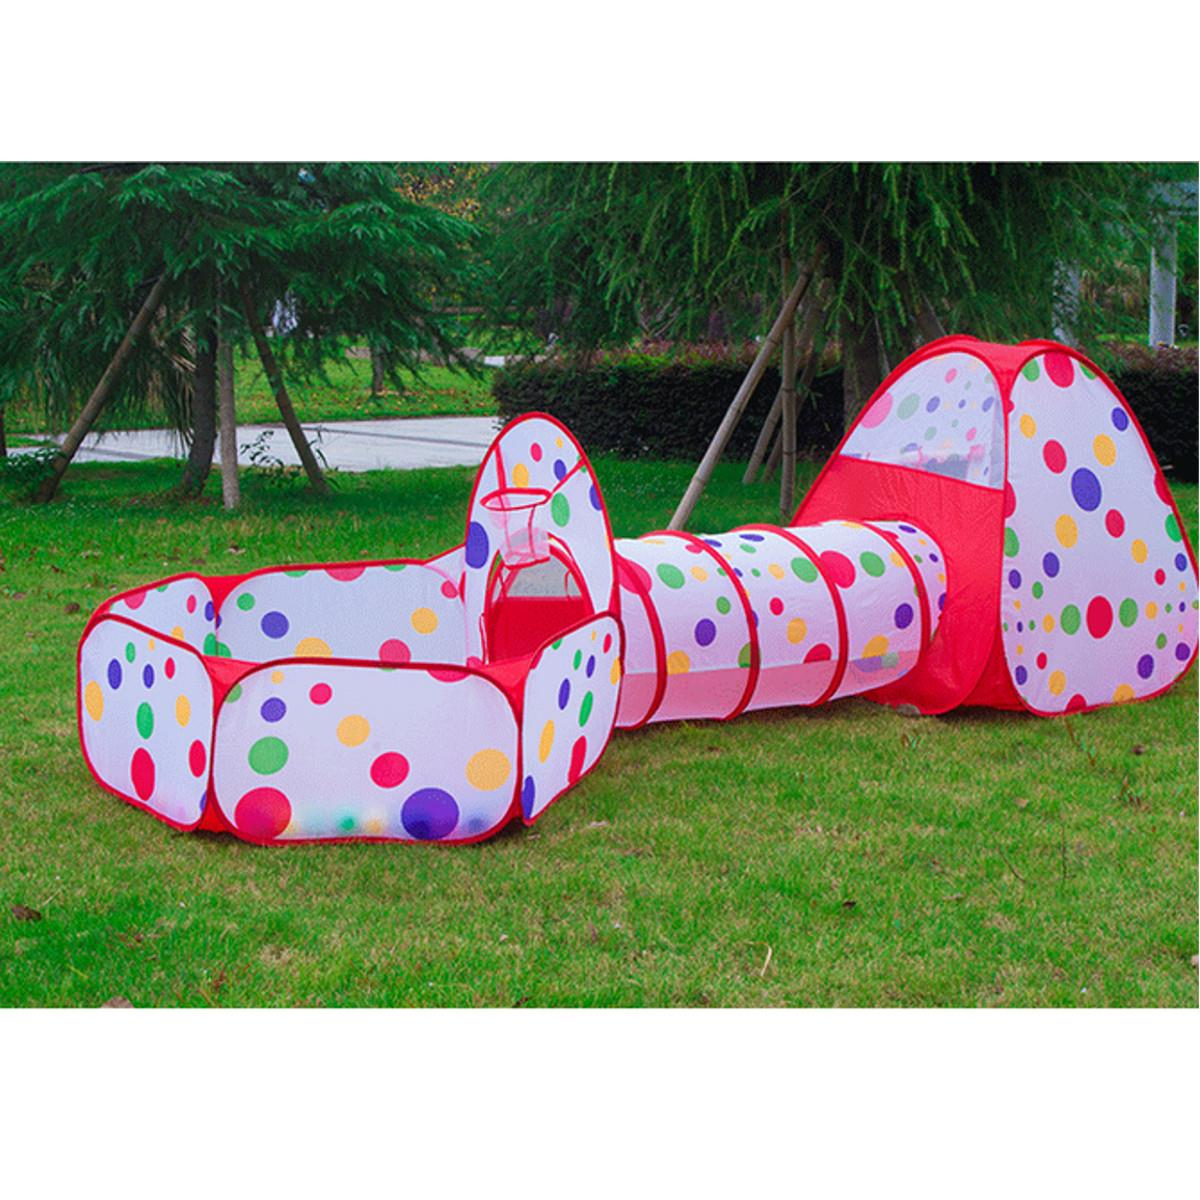 3pcs set Foldable Kids Toddler Tunnel Pop Up Play Tent Toys For Children Indoor Outdoor Playhouse